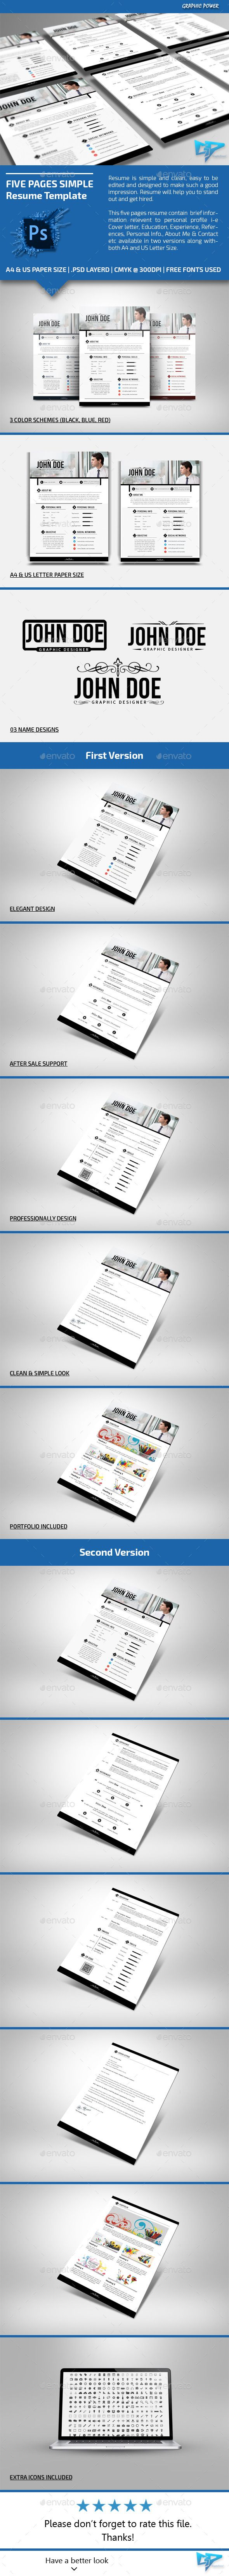 34 best Resume Template images on Pinterest | Resume templates ...